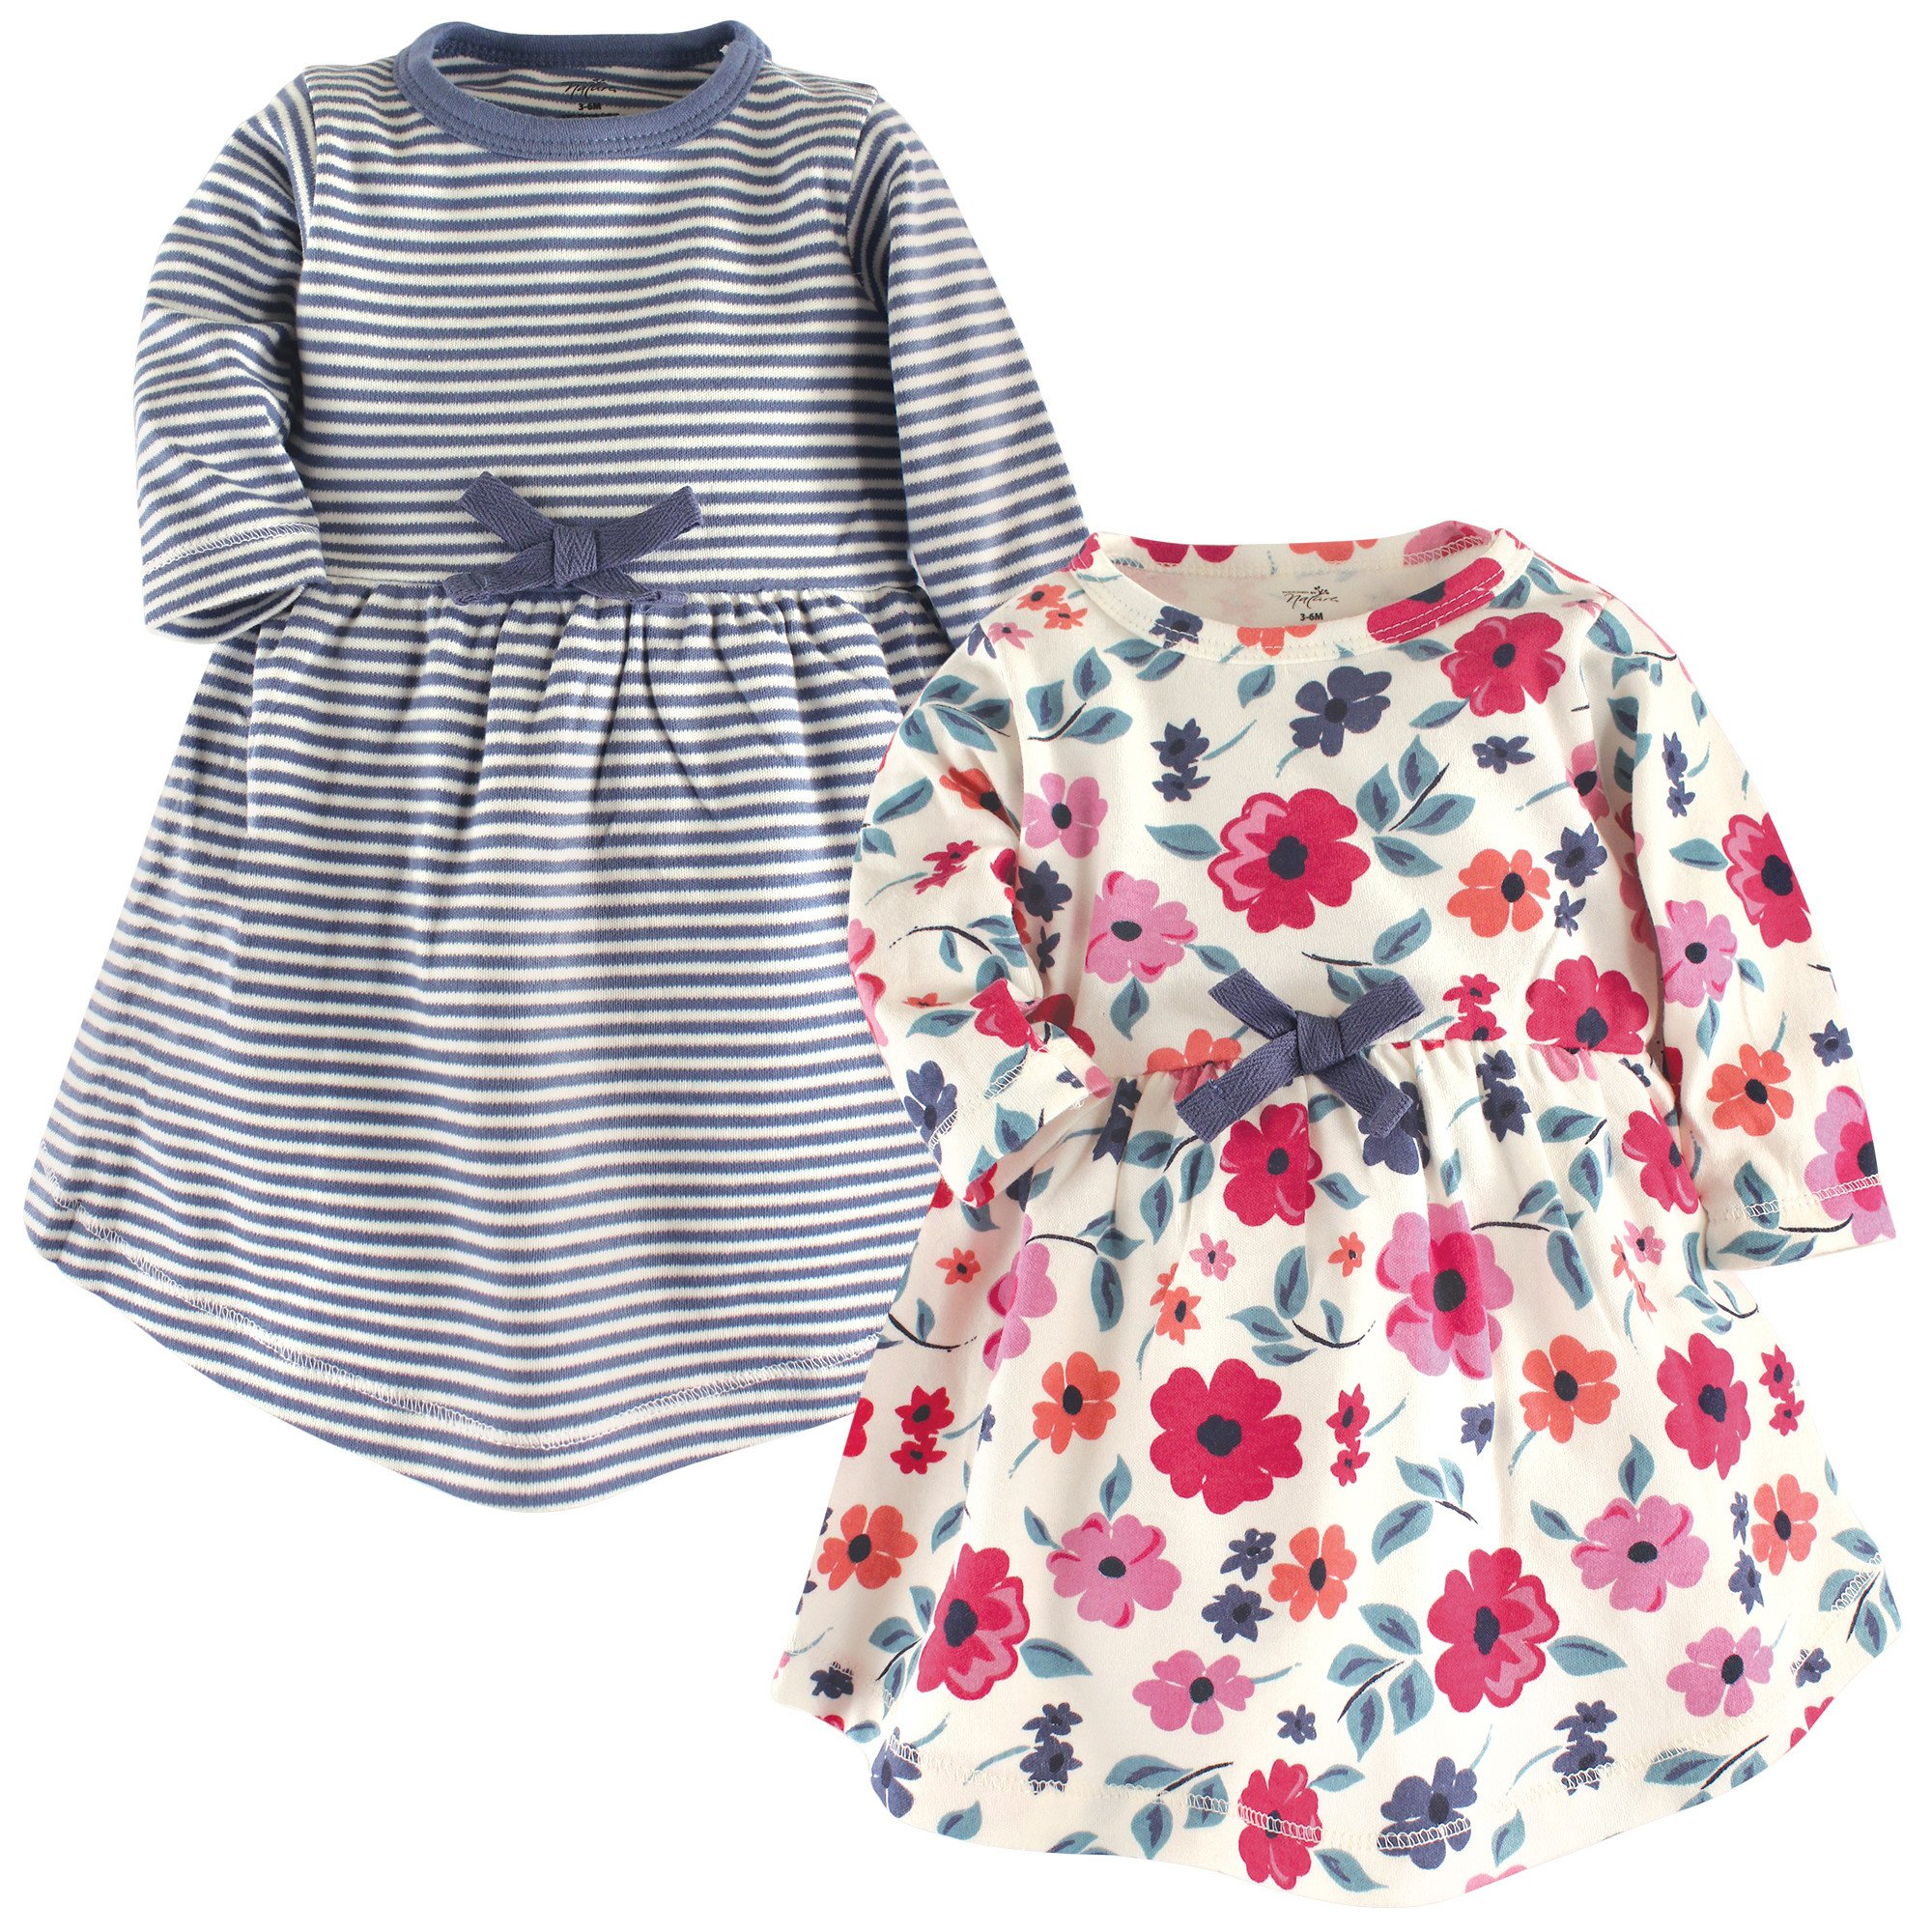 Touched by Nature Baby Girl Organic Cotton Dresses, Garden Floral Long Sleeve 2 Pack, 3 Toddler (3T)